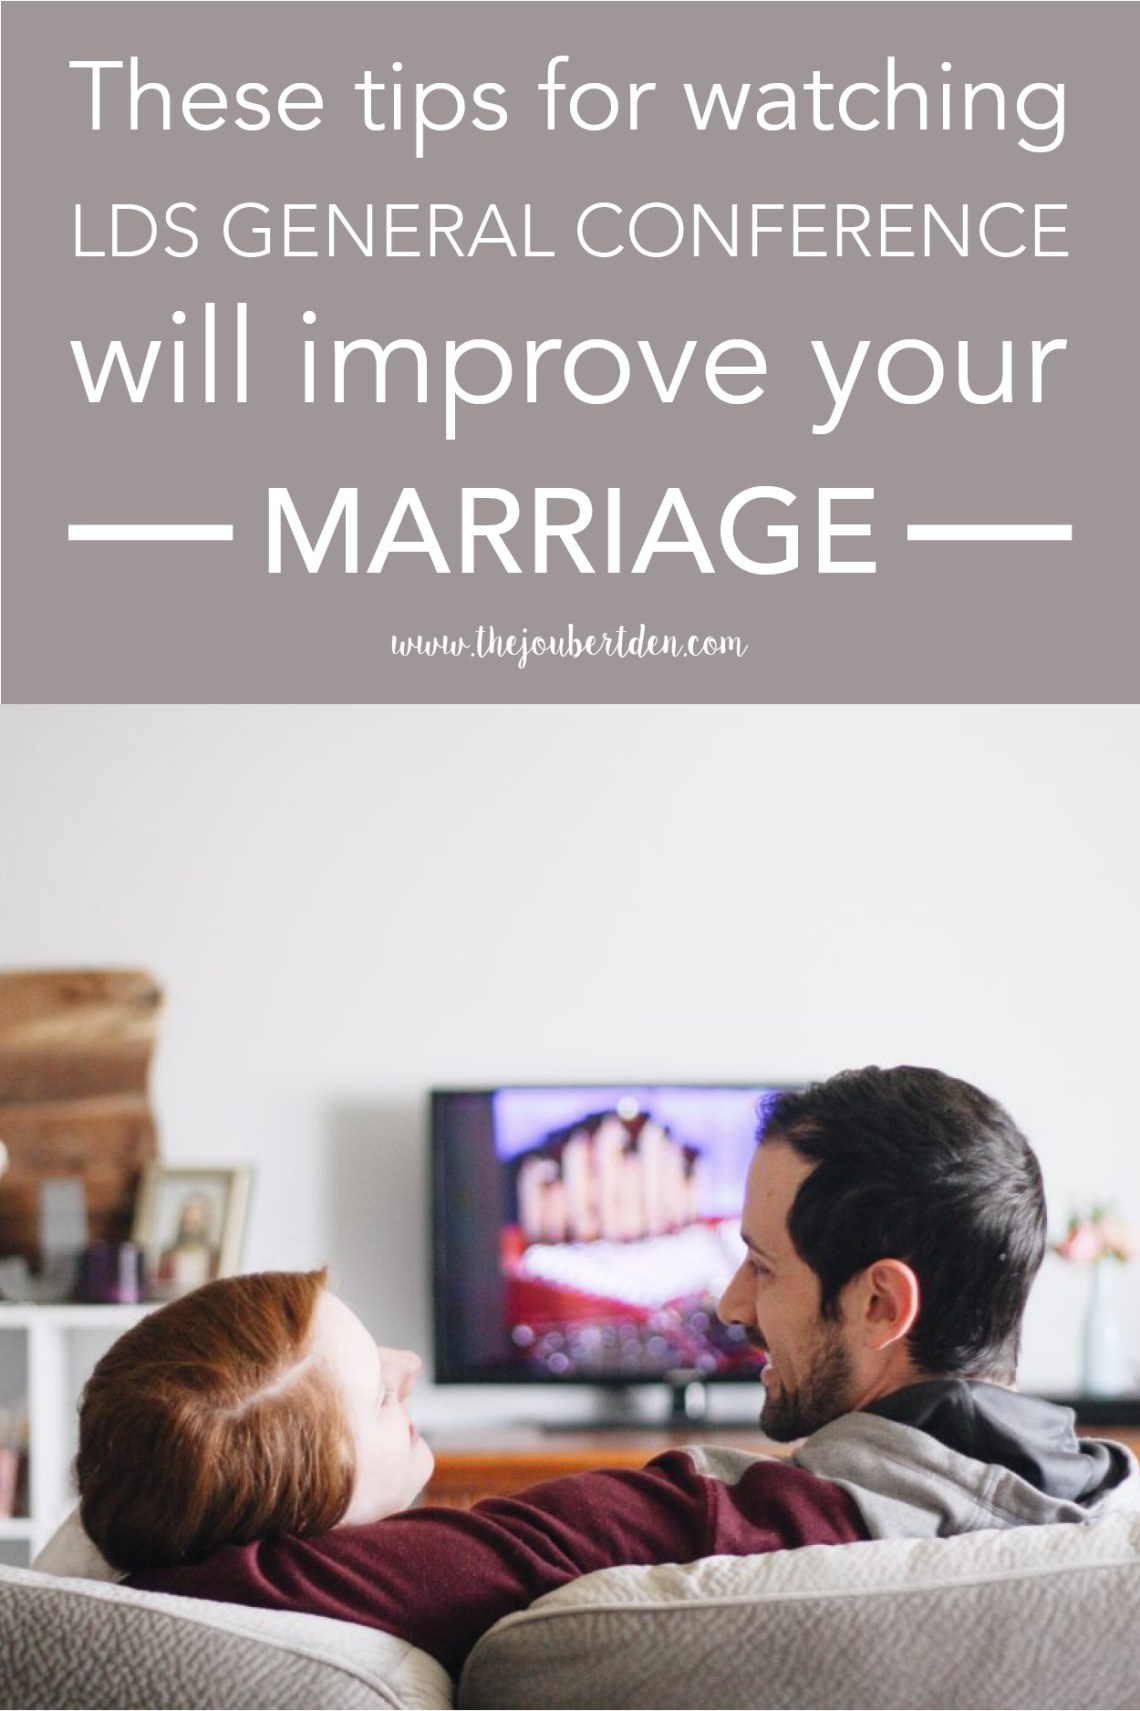 LDS General Conference Viewing Tips For Married Couples